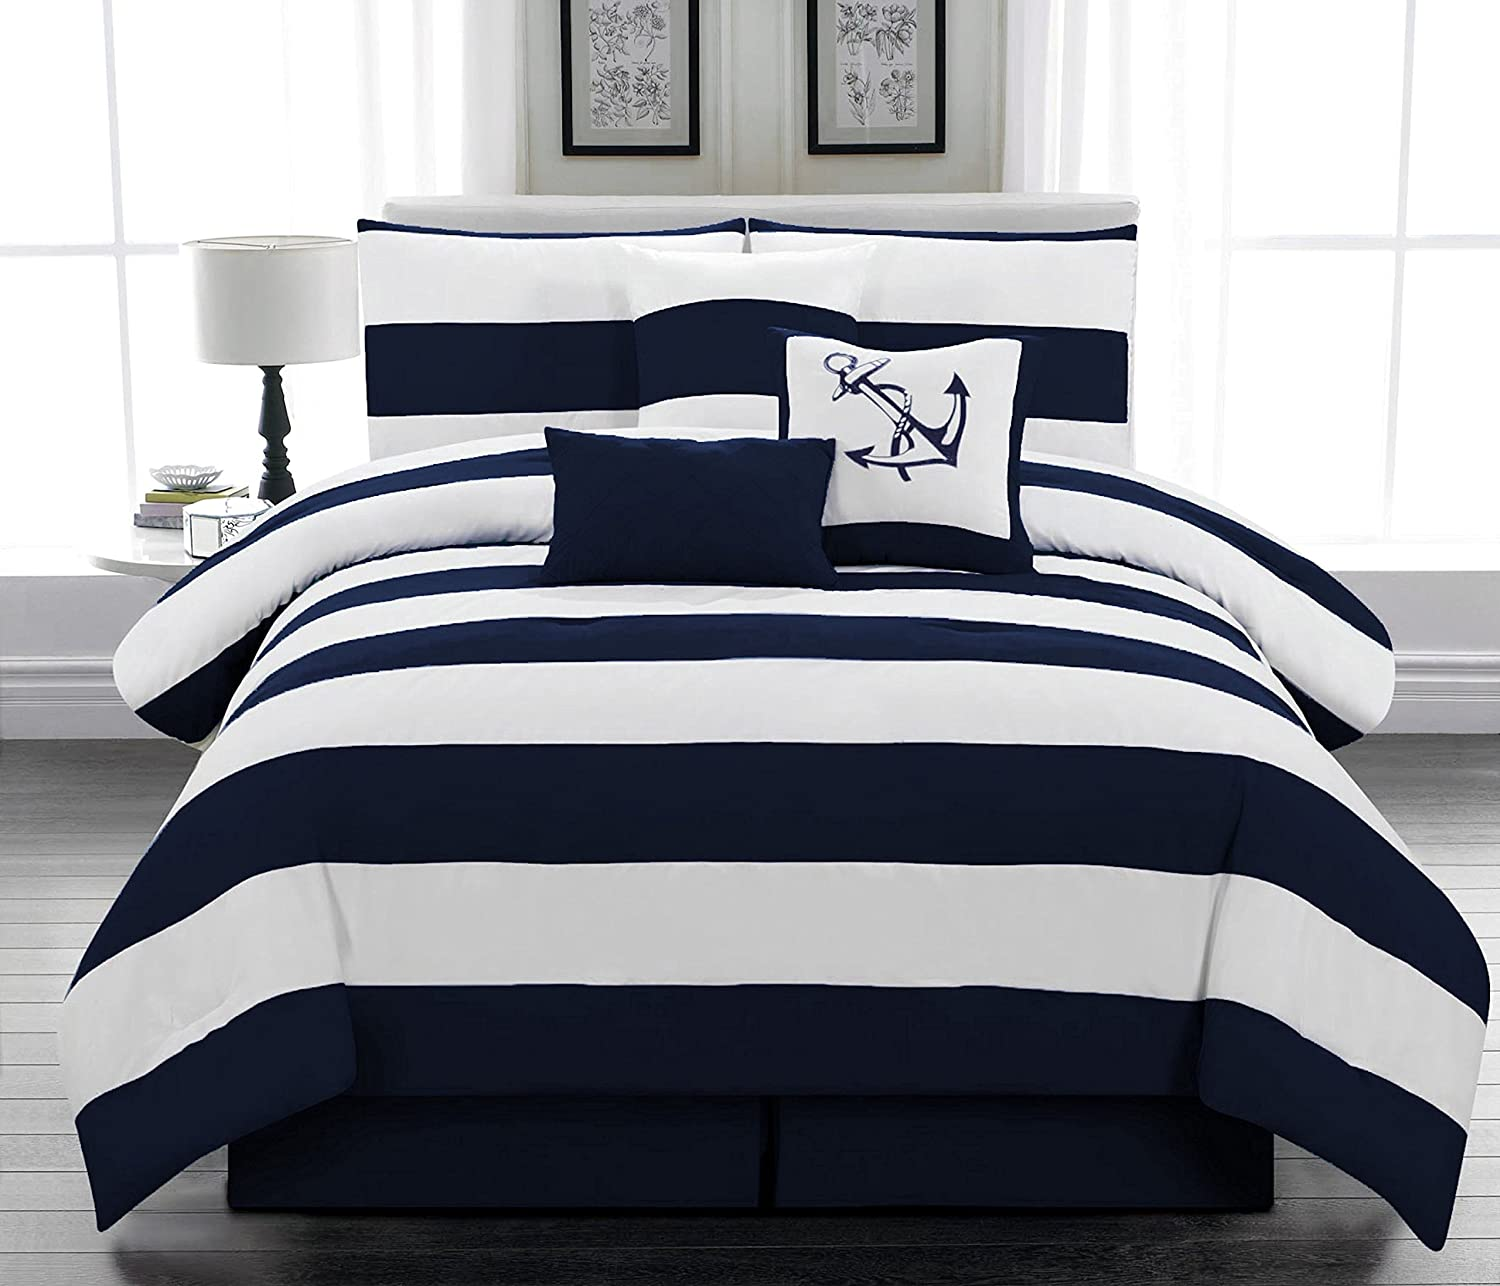 Legacy Decor 7pc Microfiber Nautical Themed Comforter Set Navy Blue And White Striped Full Queen And King Sizes Twin Home Kitchen